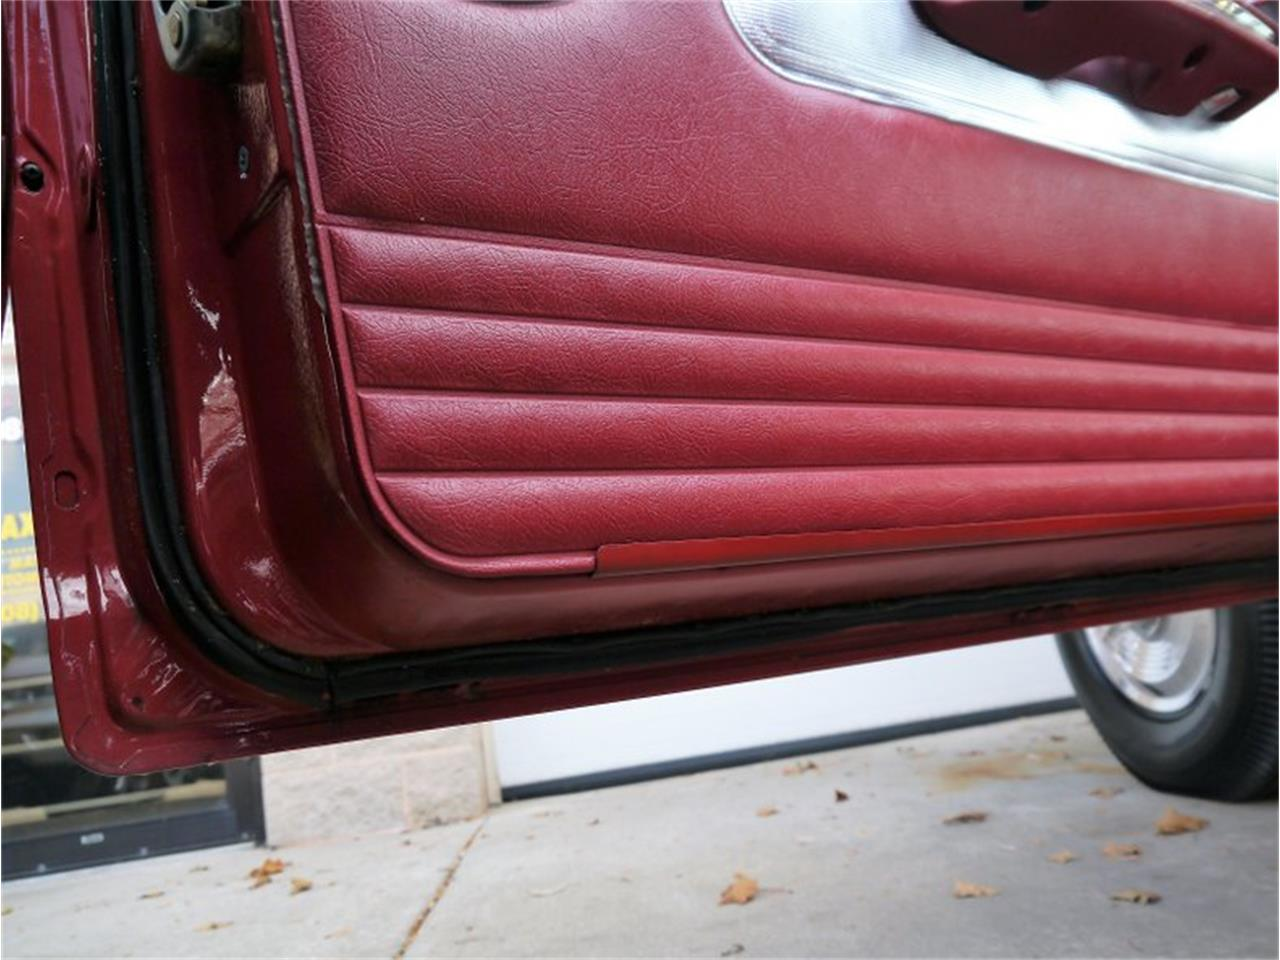 1963 Ford Galaxie 500 for sale in Alsip, IL – photo 86